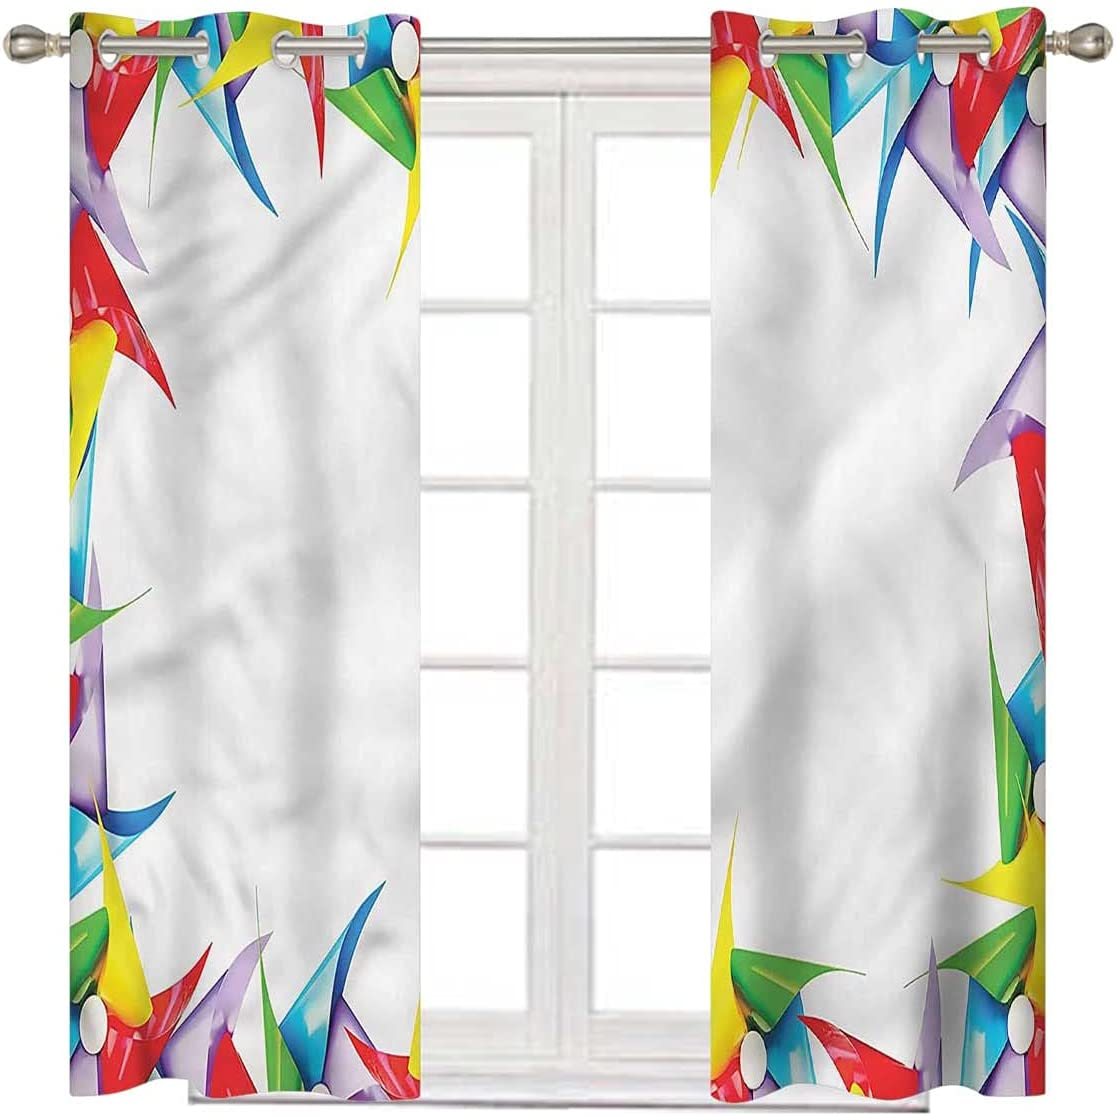 Pinwheel Blackout Curtain 72 Inch Long Choice Classic Colorful Square in Figure